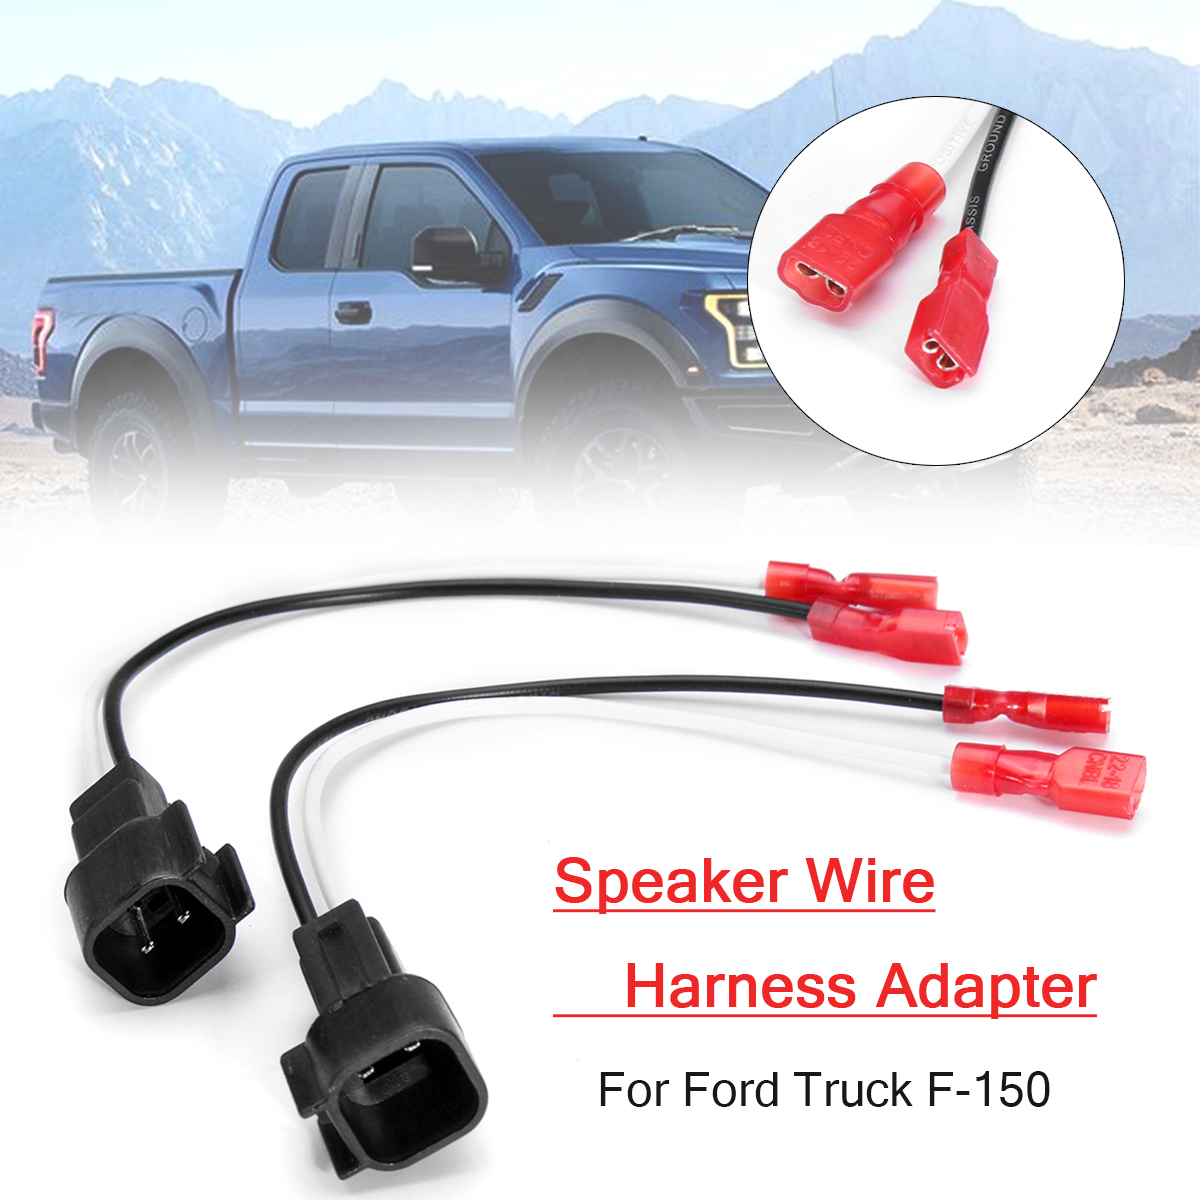 medium resolution of radio speaker wire harness adapter plug metra 72 5600 for ford truck f 150 in cables adapters sockets from automobiles motorcycles on aliexpress com